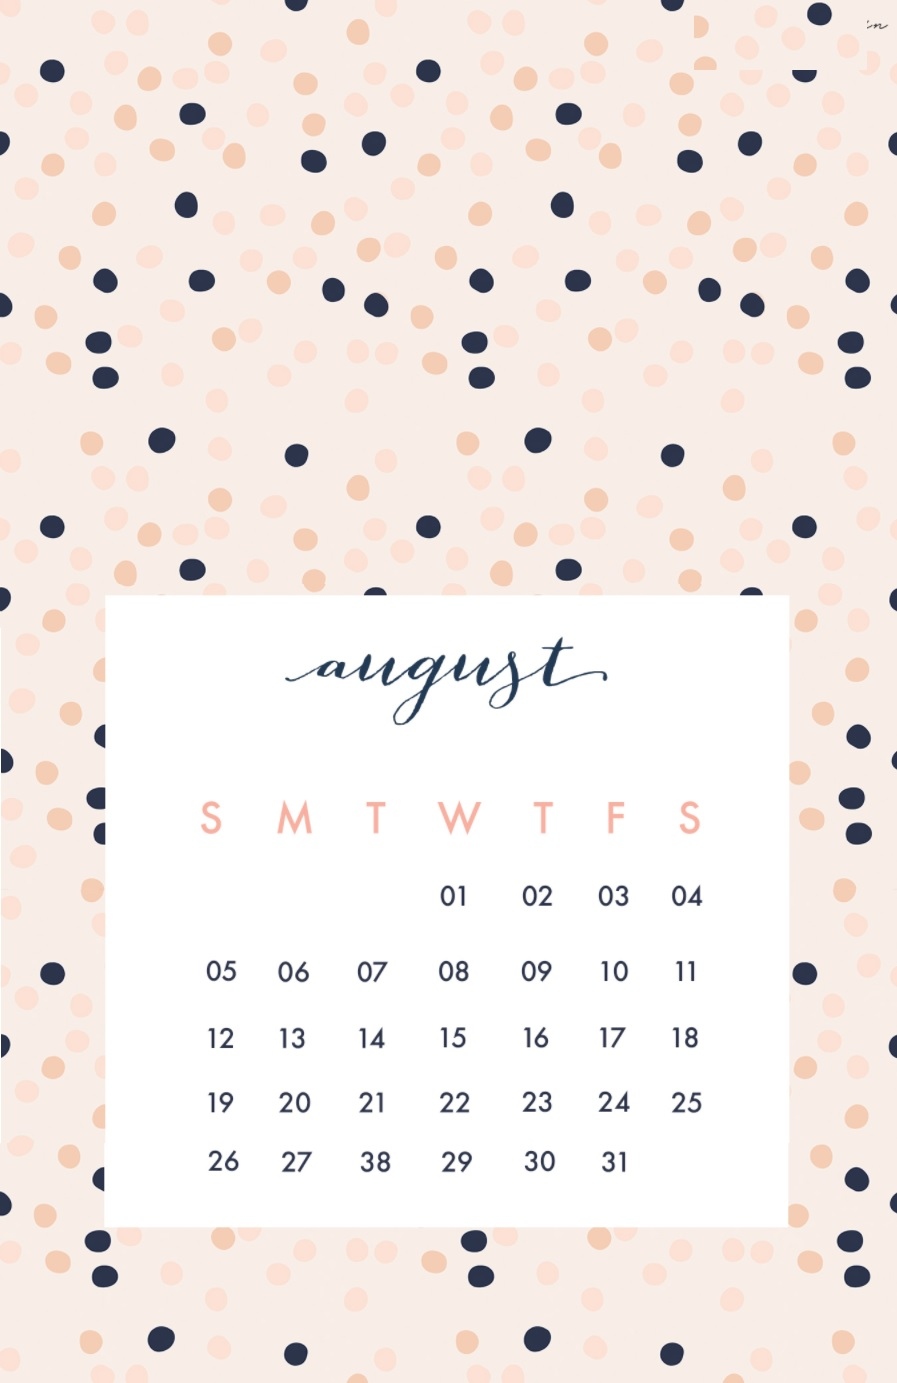 August 2018 iPhone Calendar Design